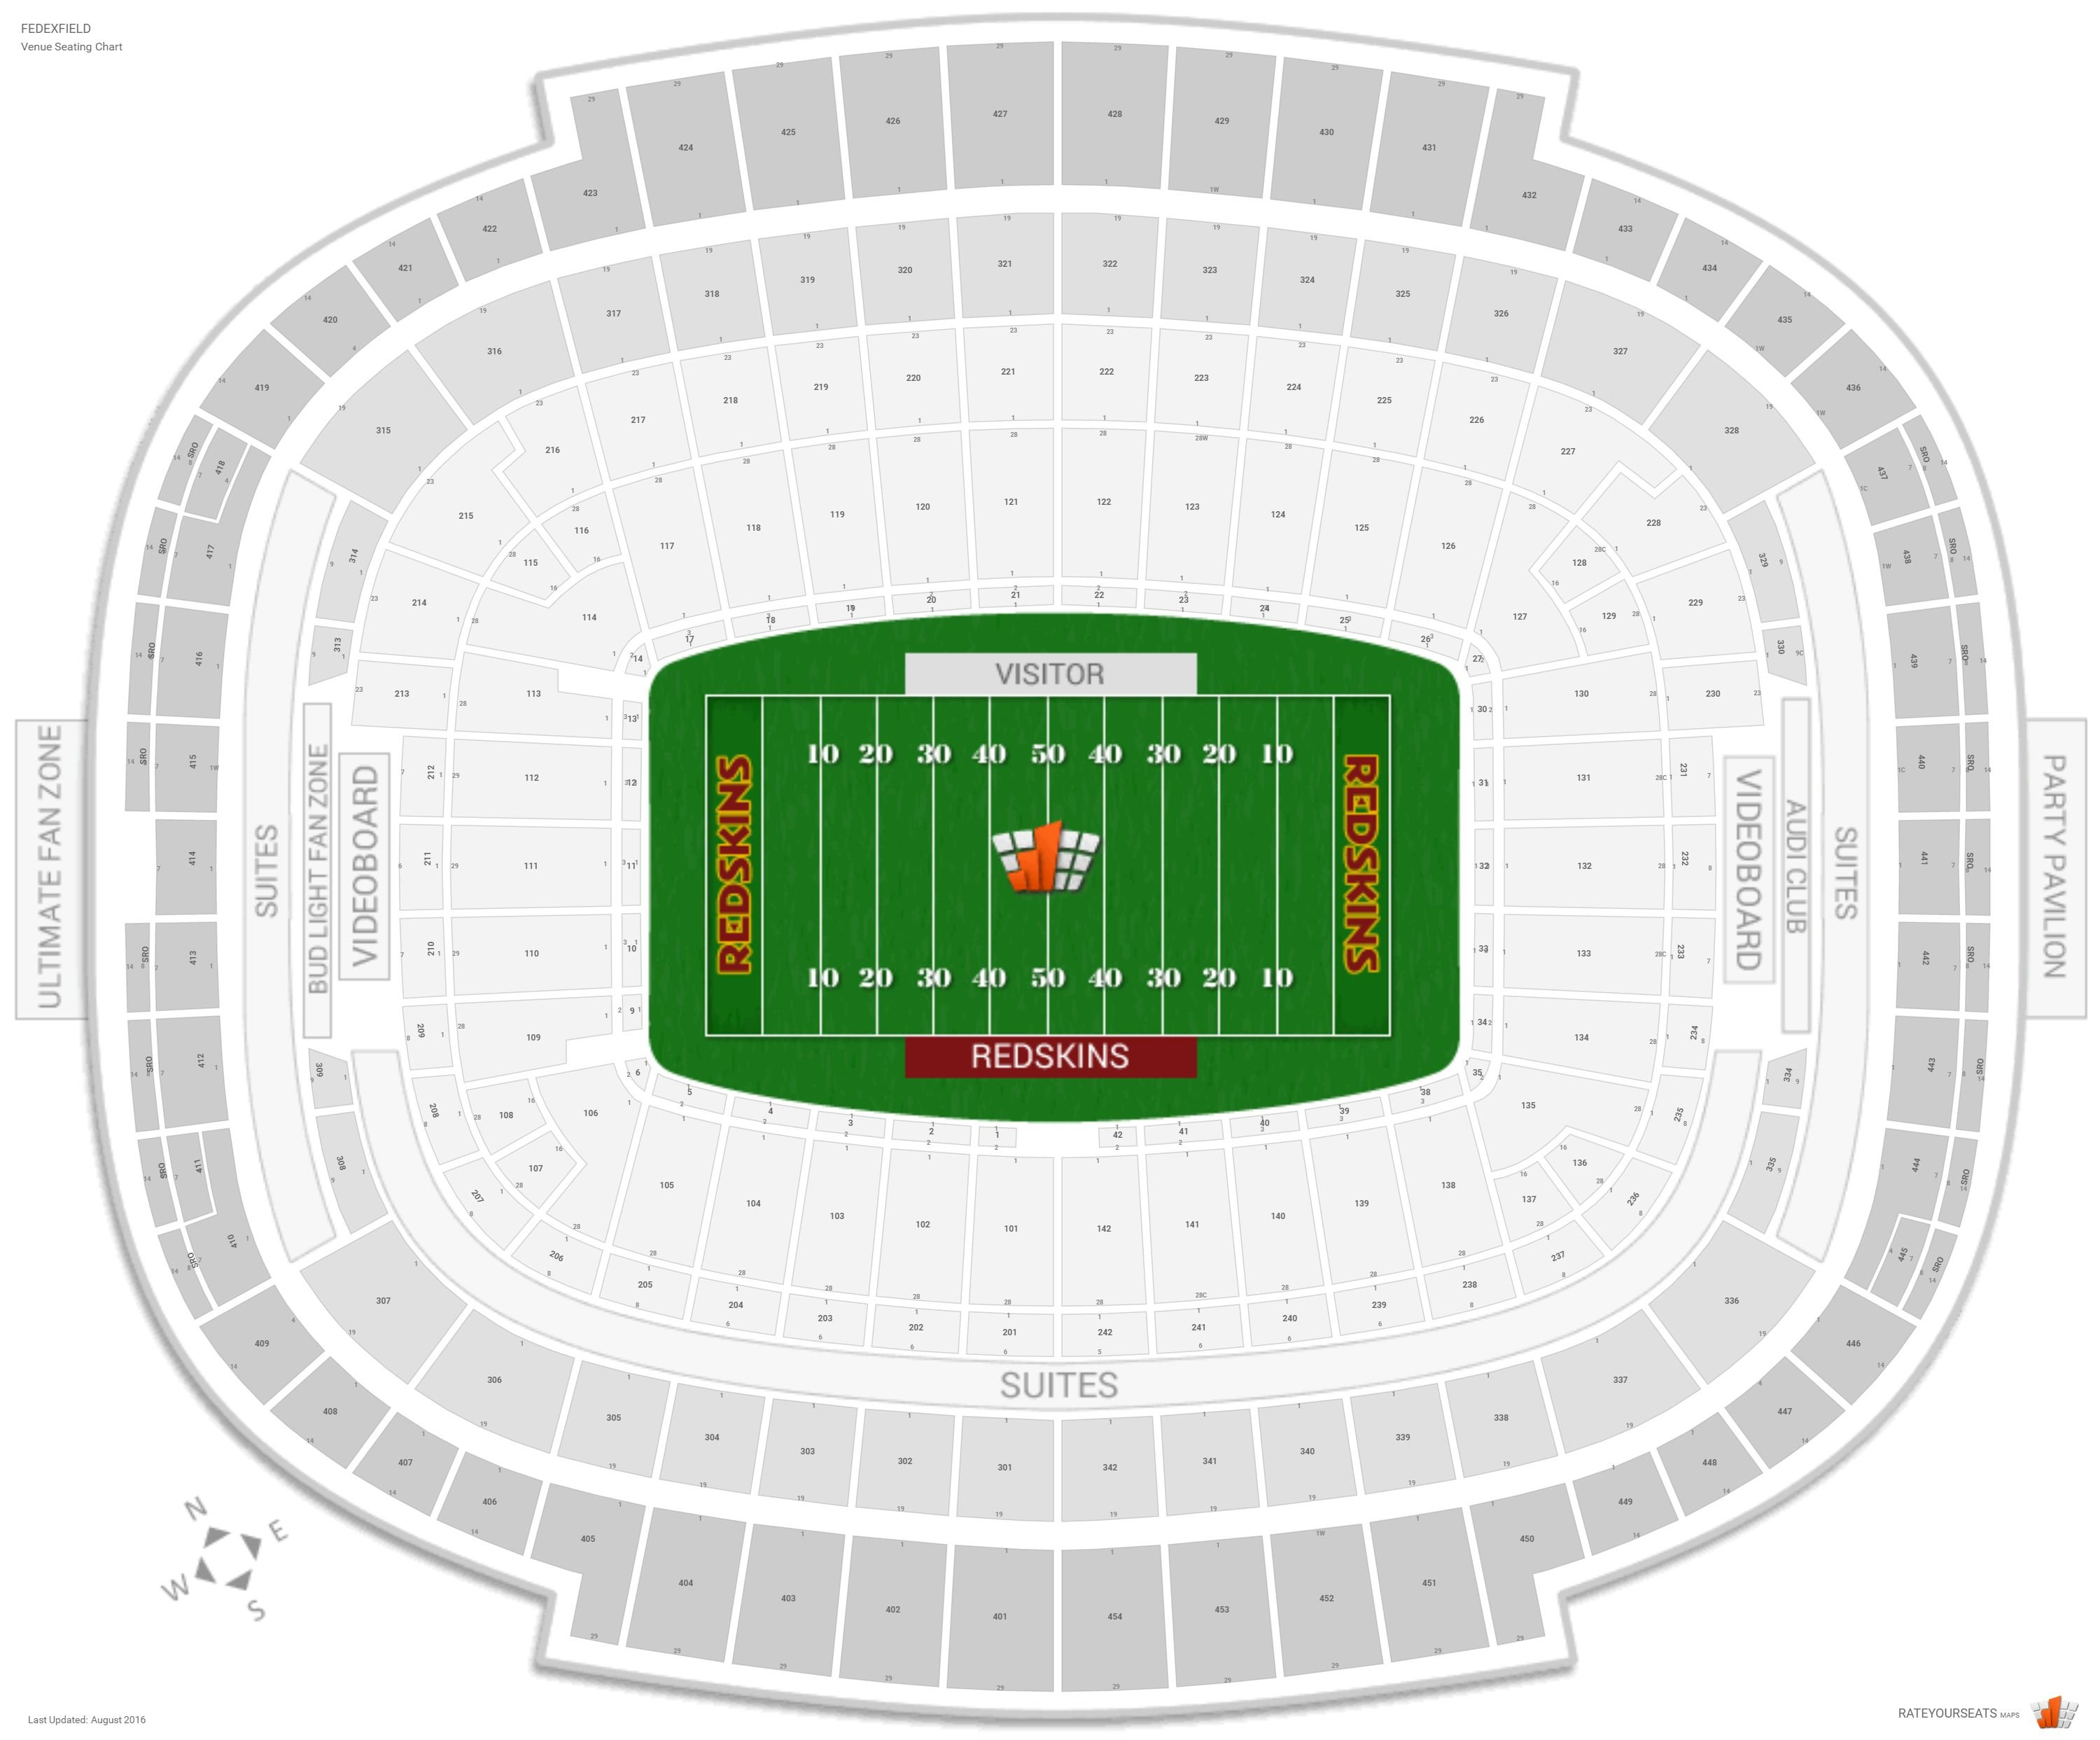 washington redskins seating guide - fedexfield ... diagram of maturation of follicle diagram of fedex field